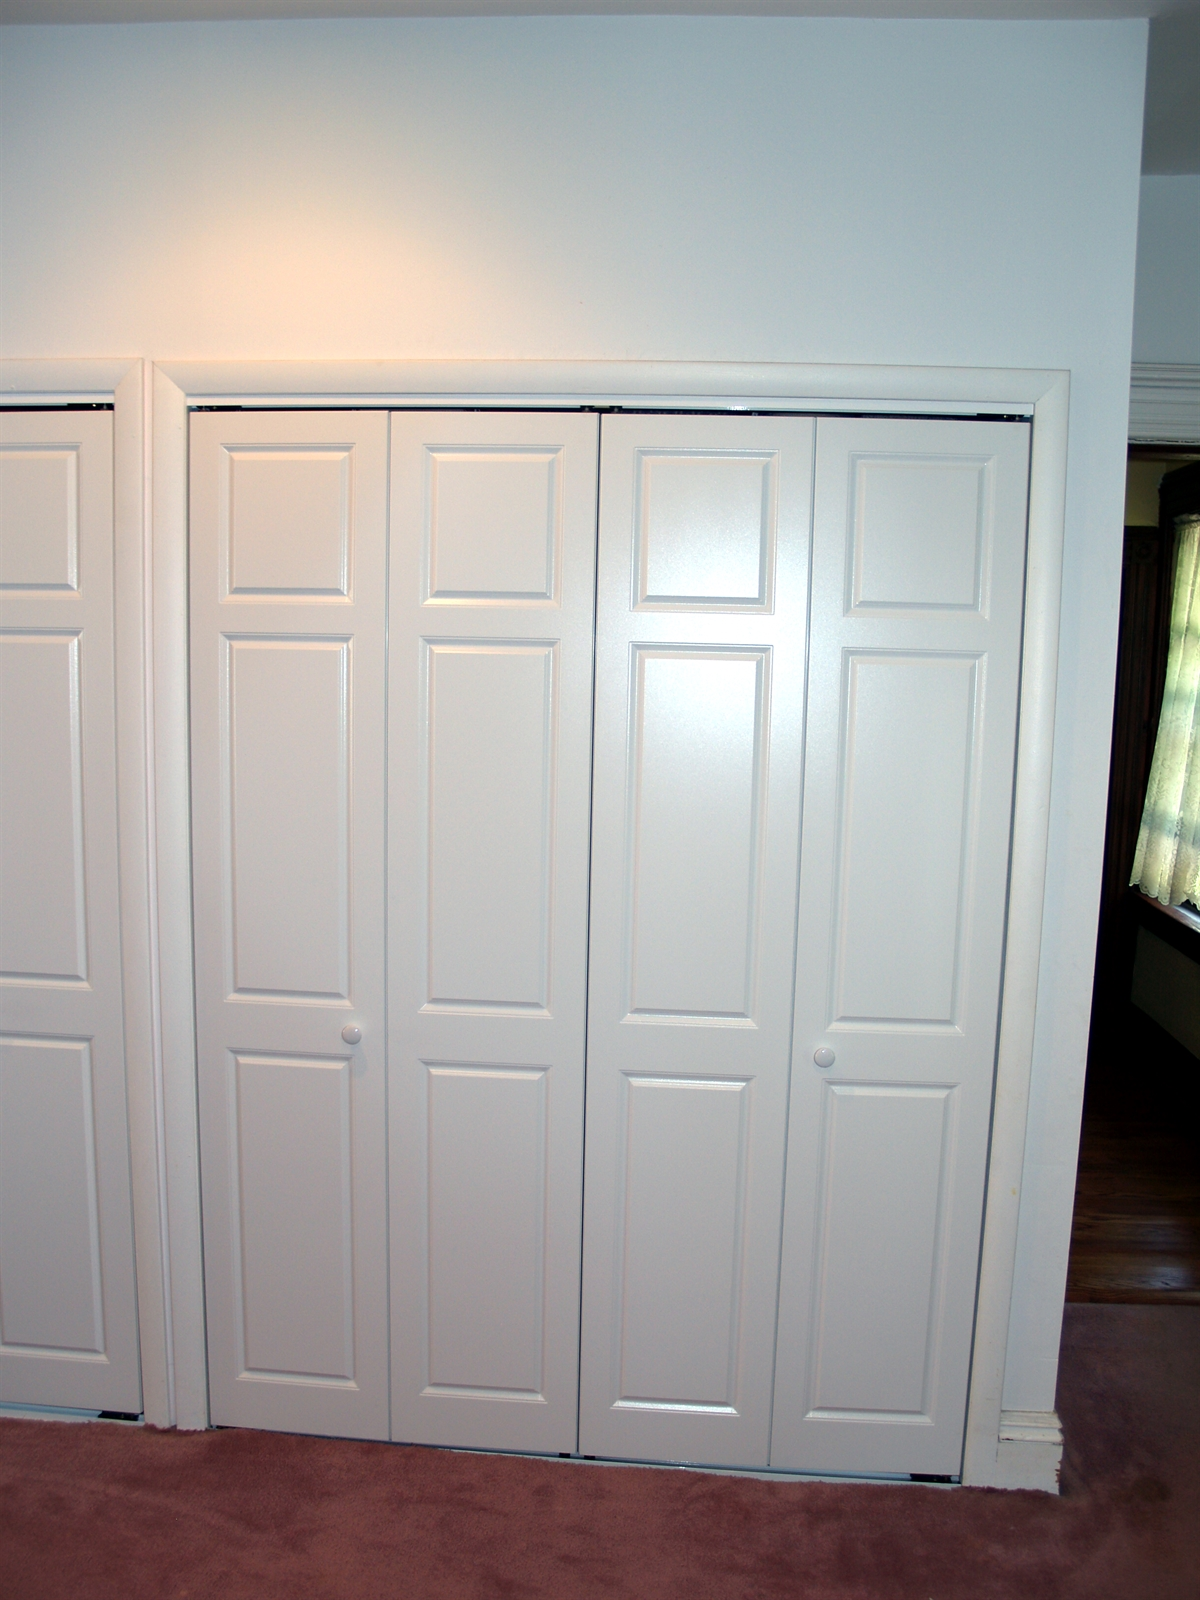 White raised panel large bi-fold bedroom closet doors